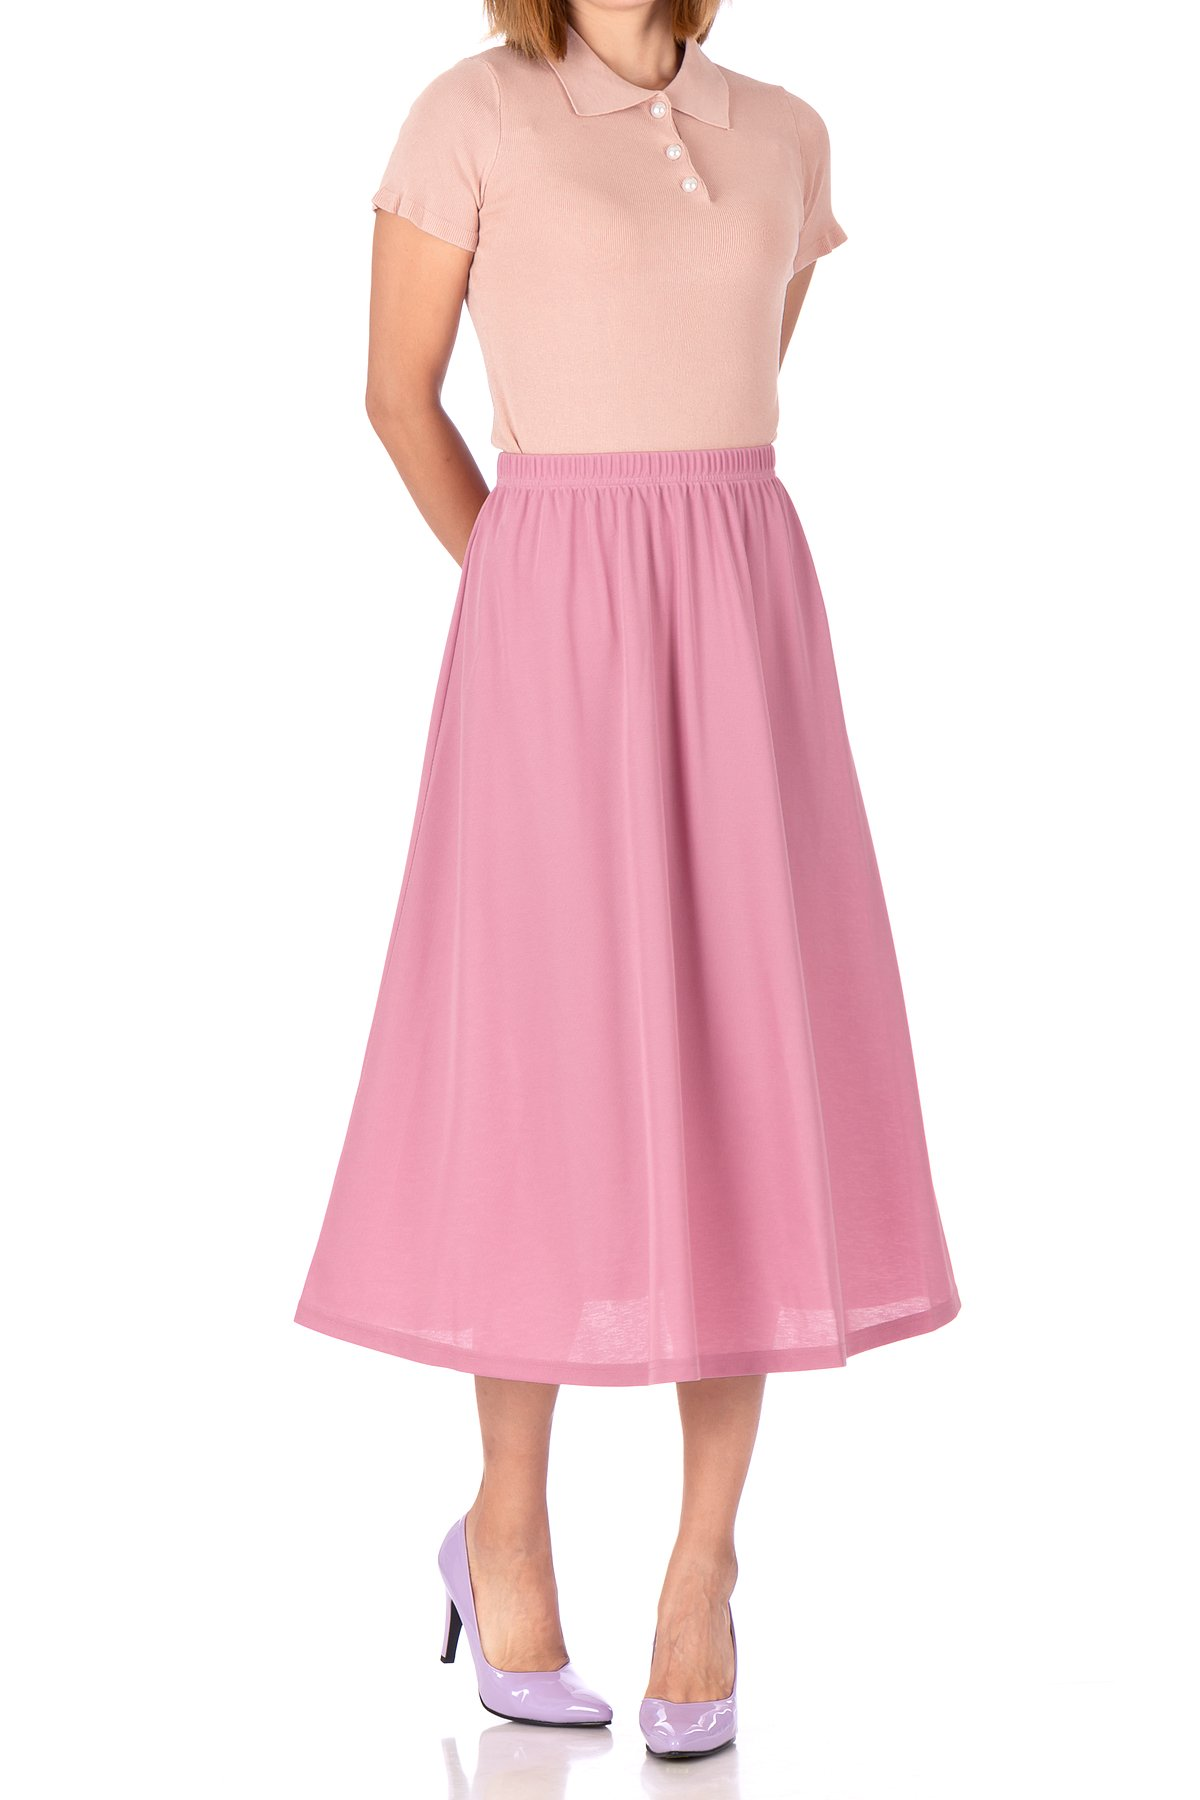 Brilliant Elastic Waist Full Flared Long Skirt Flamingo 01 1